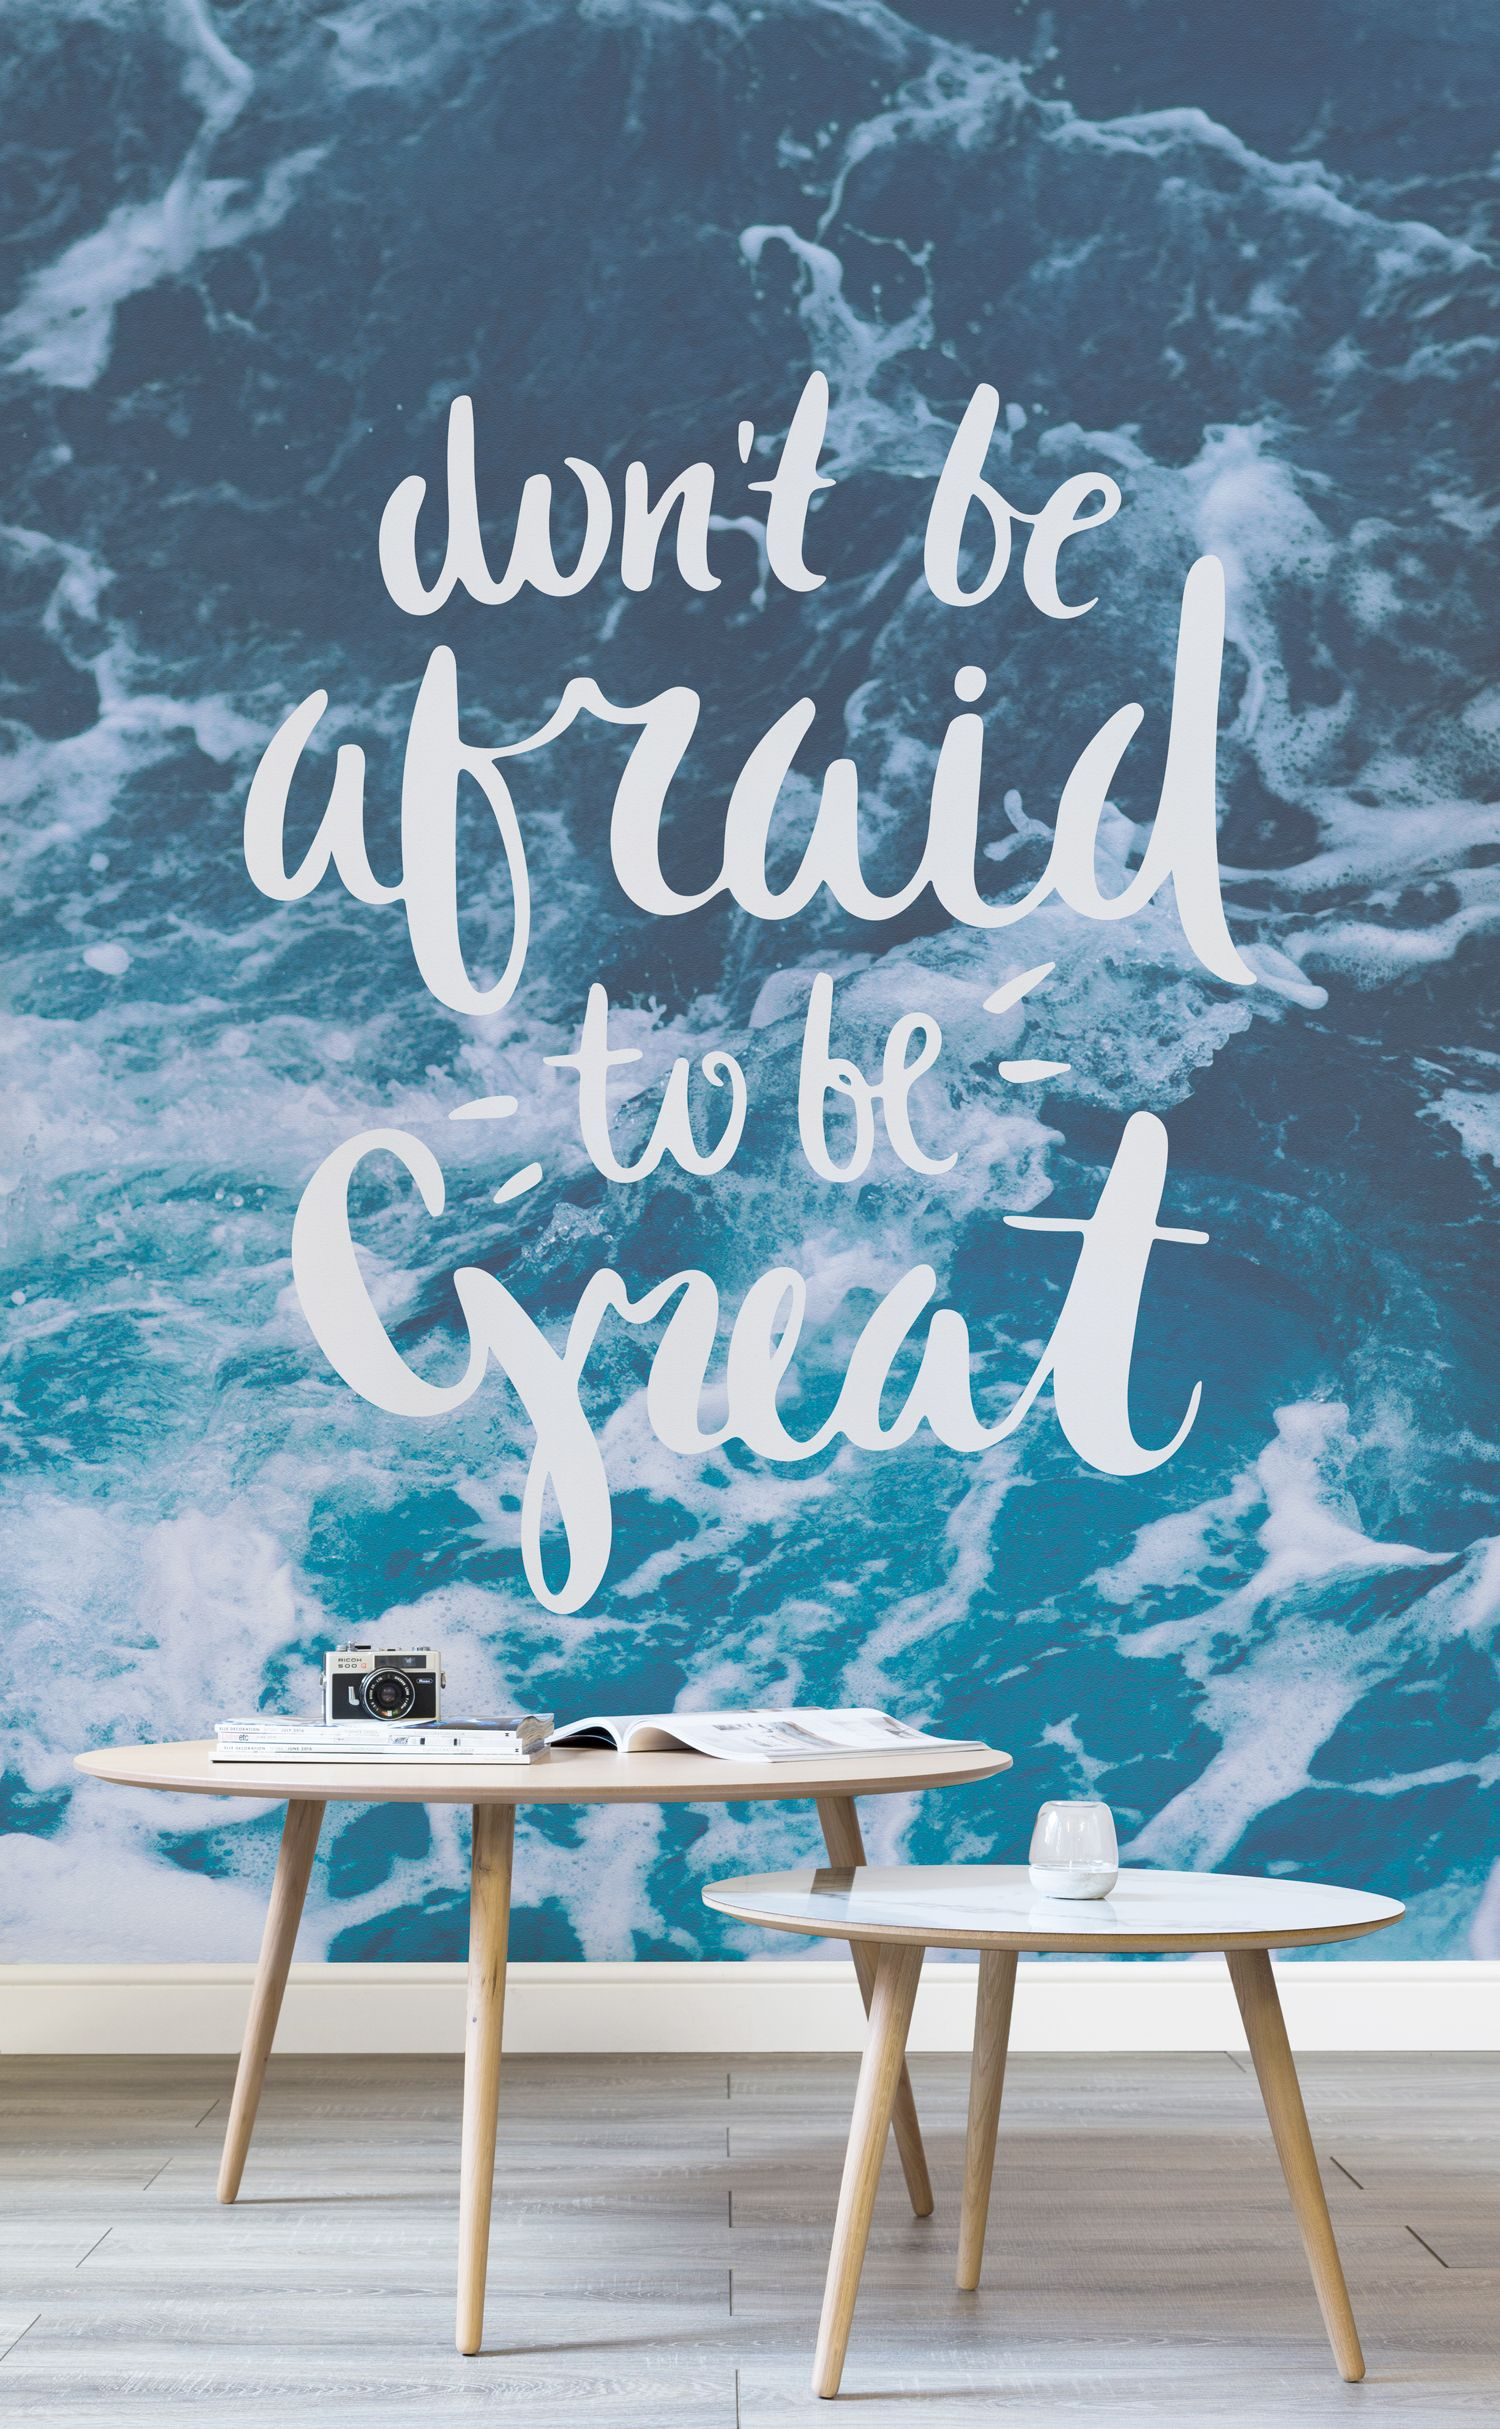 be great inspirational quote wallpaper mural chacha wallpaperthis quote wallpaper mural balances between washed blue tones of the ocean with a bold graphic pair with neutral furnishings for a totally serene